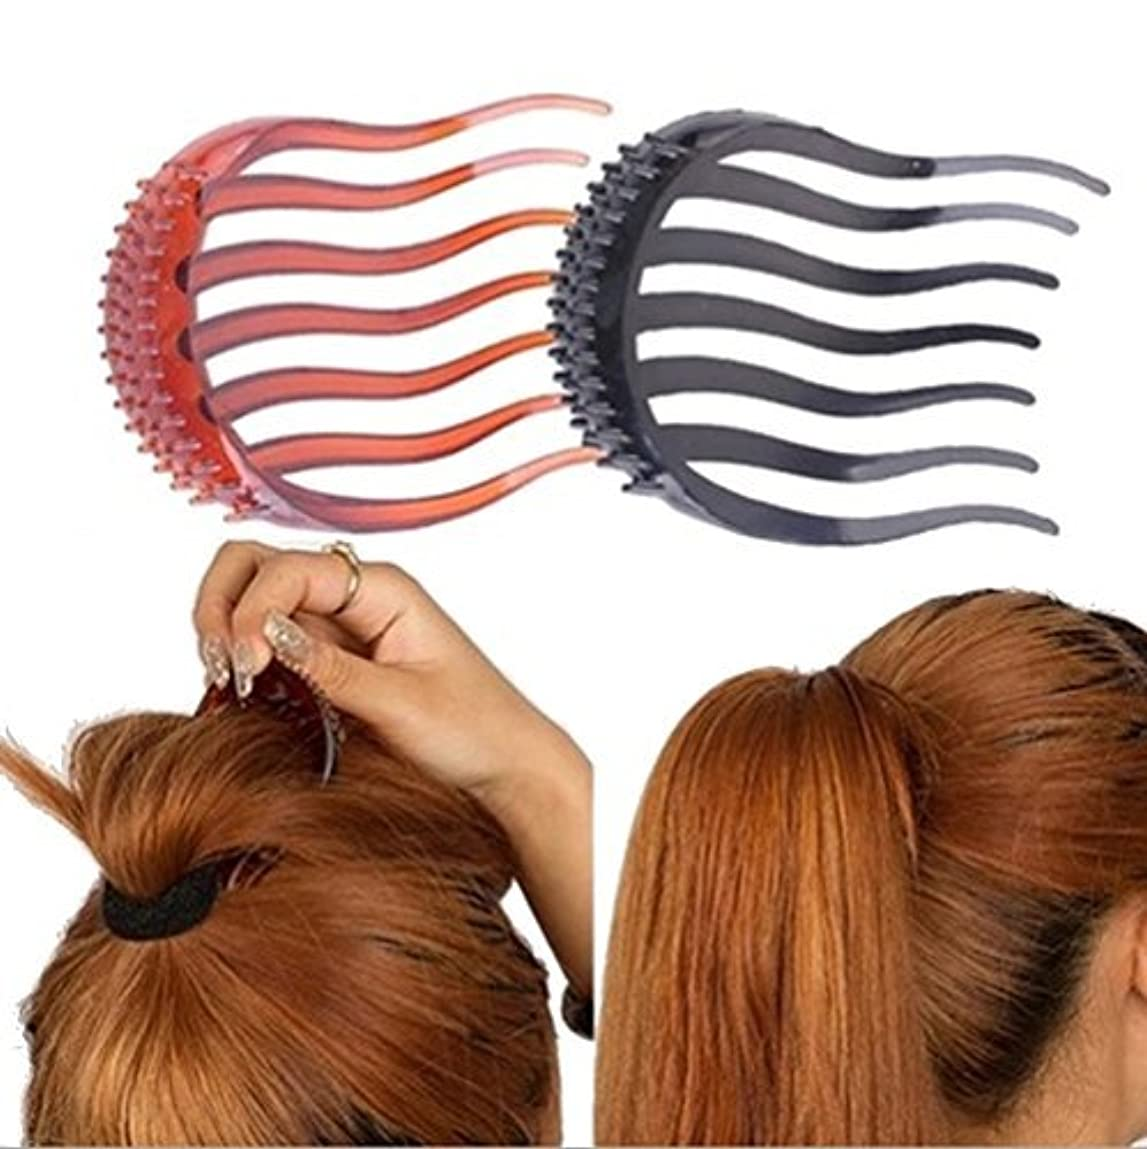 邪魔する盲目安全でない2Pcs Ponytail Bump it UP Hair Styling Insert Comb Fluffy Hair Comb (1Black+1Coffee) [並行輸入品]